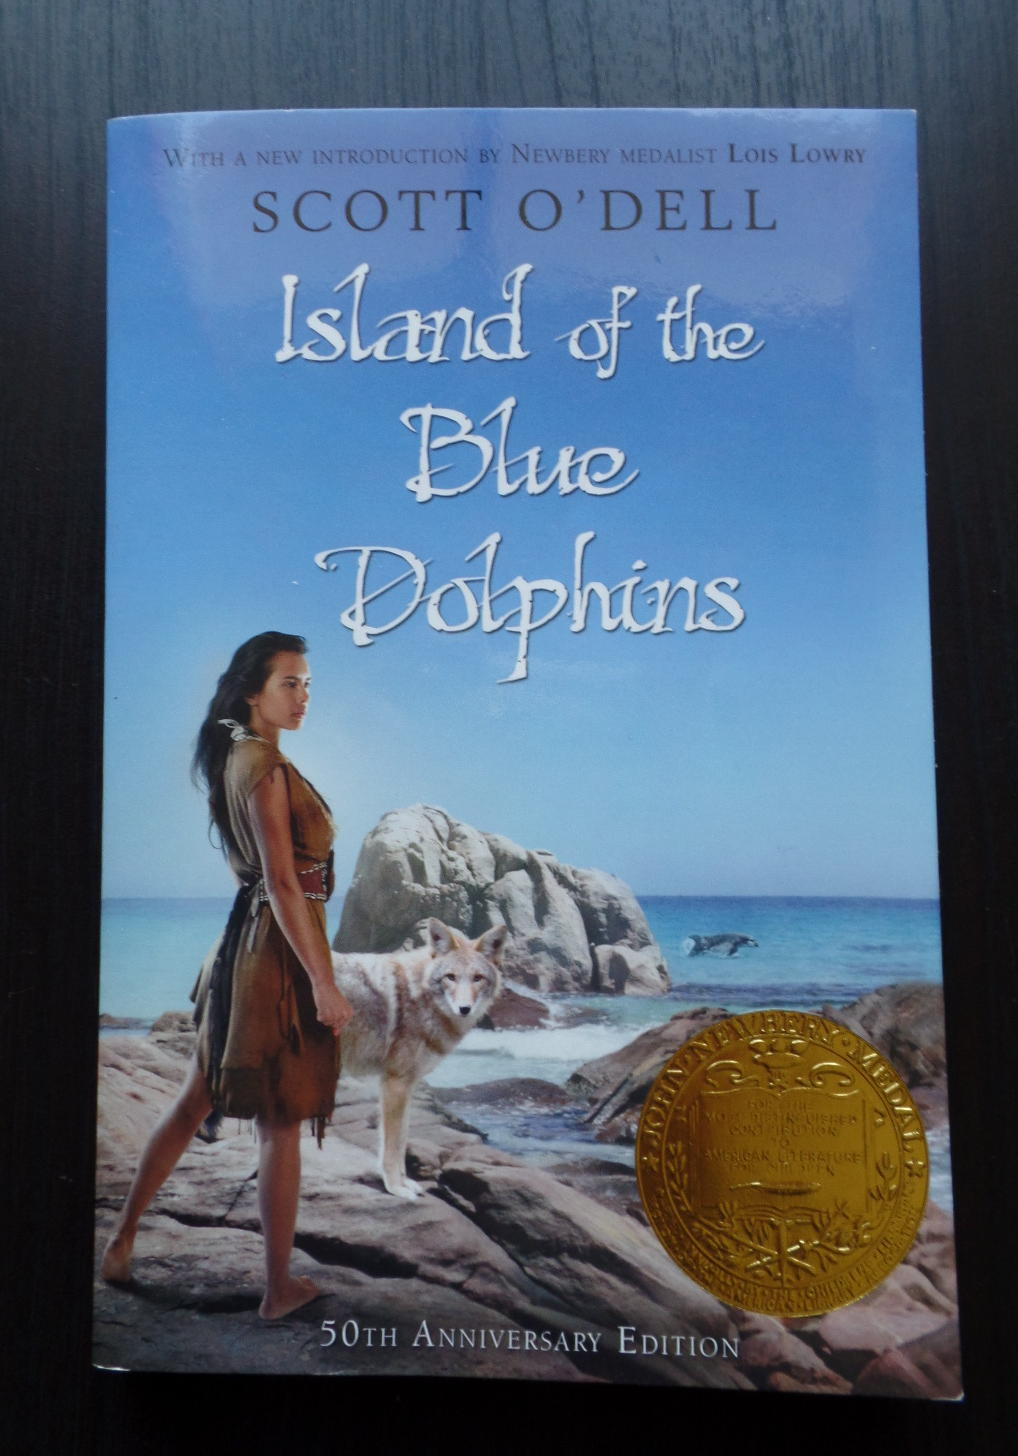 reading island of the blue dolphins for the first time the samsung camera pictures